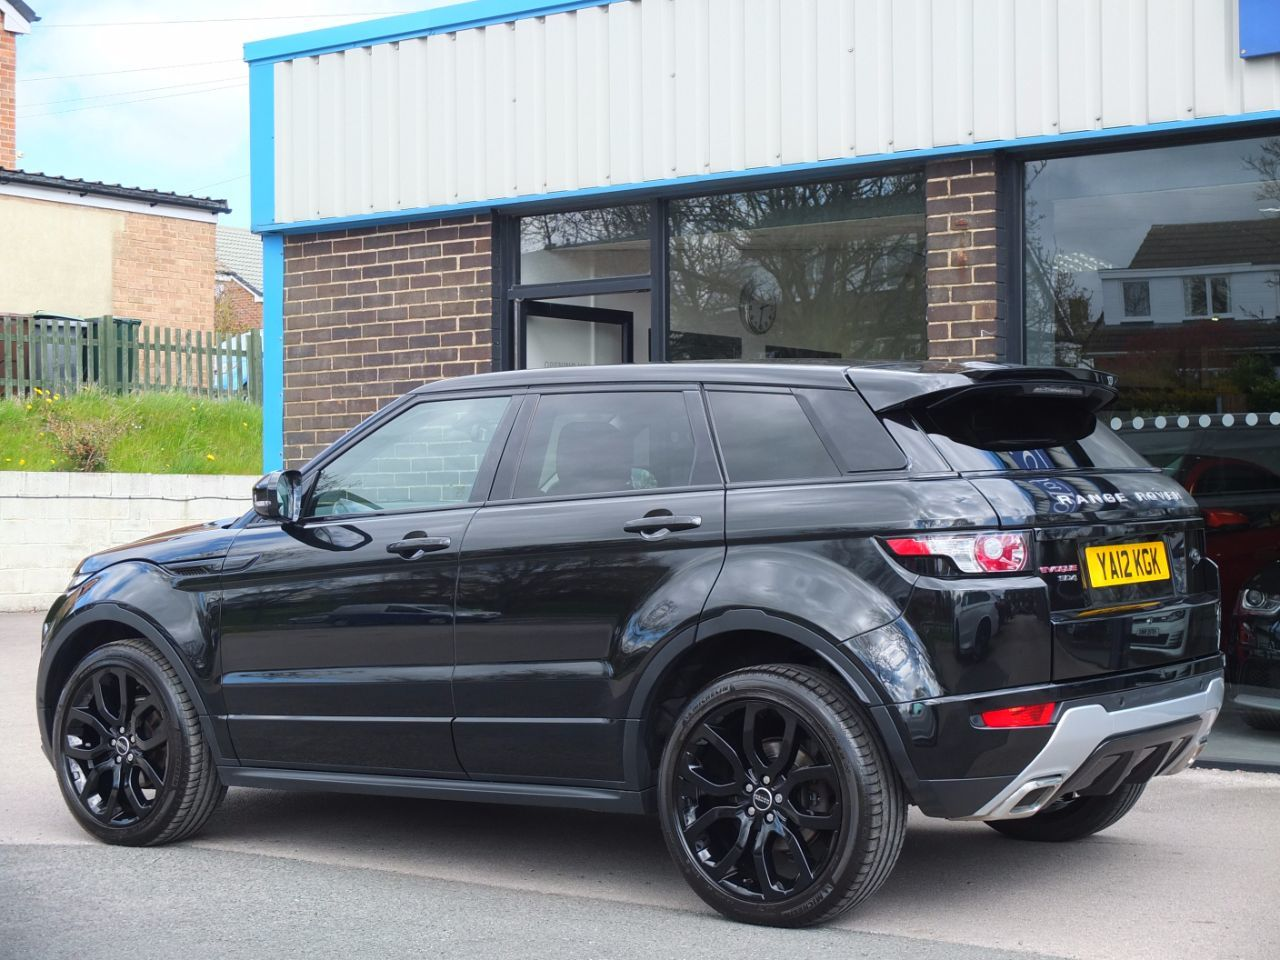 Used Land Rover Range Rover Evoque 2.2 SD4 Dynamic 5 door ...